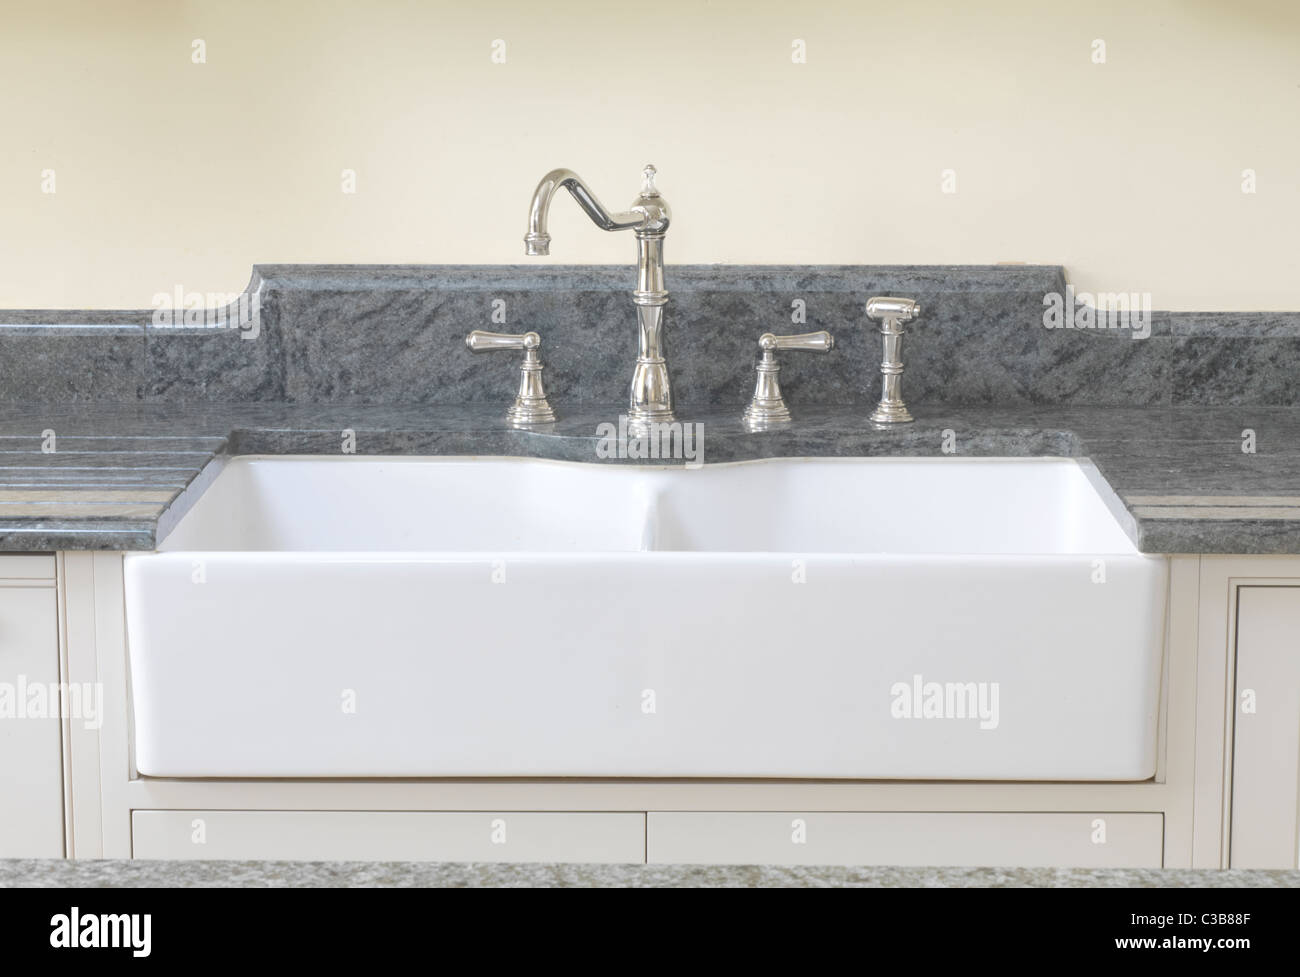 Kitchen Sink In French Double French Farmhouse Sink With The Ceramic Front Exposed And